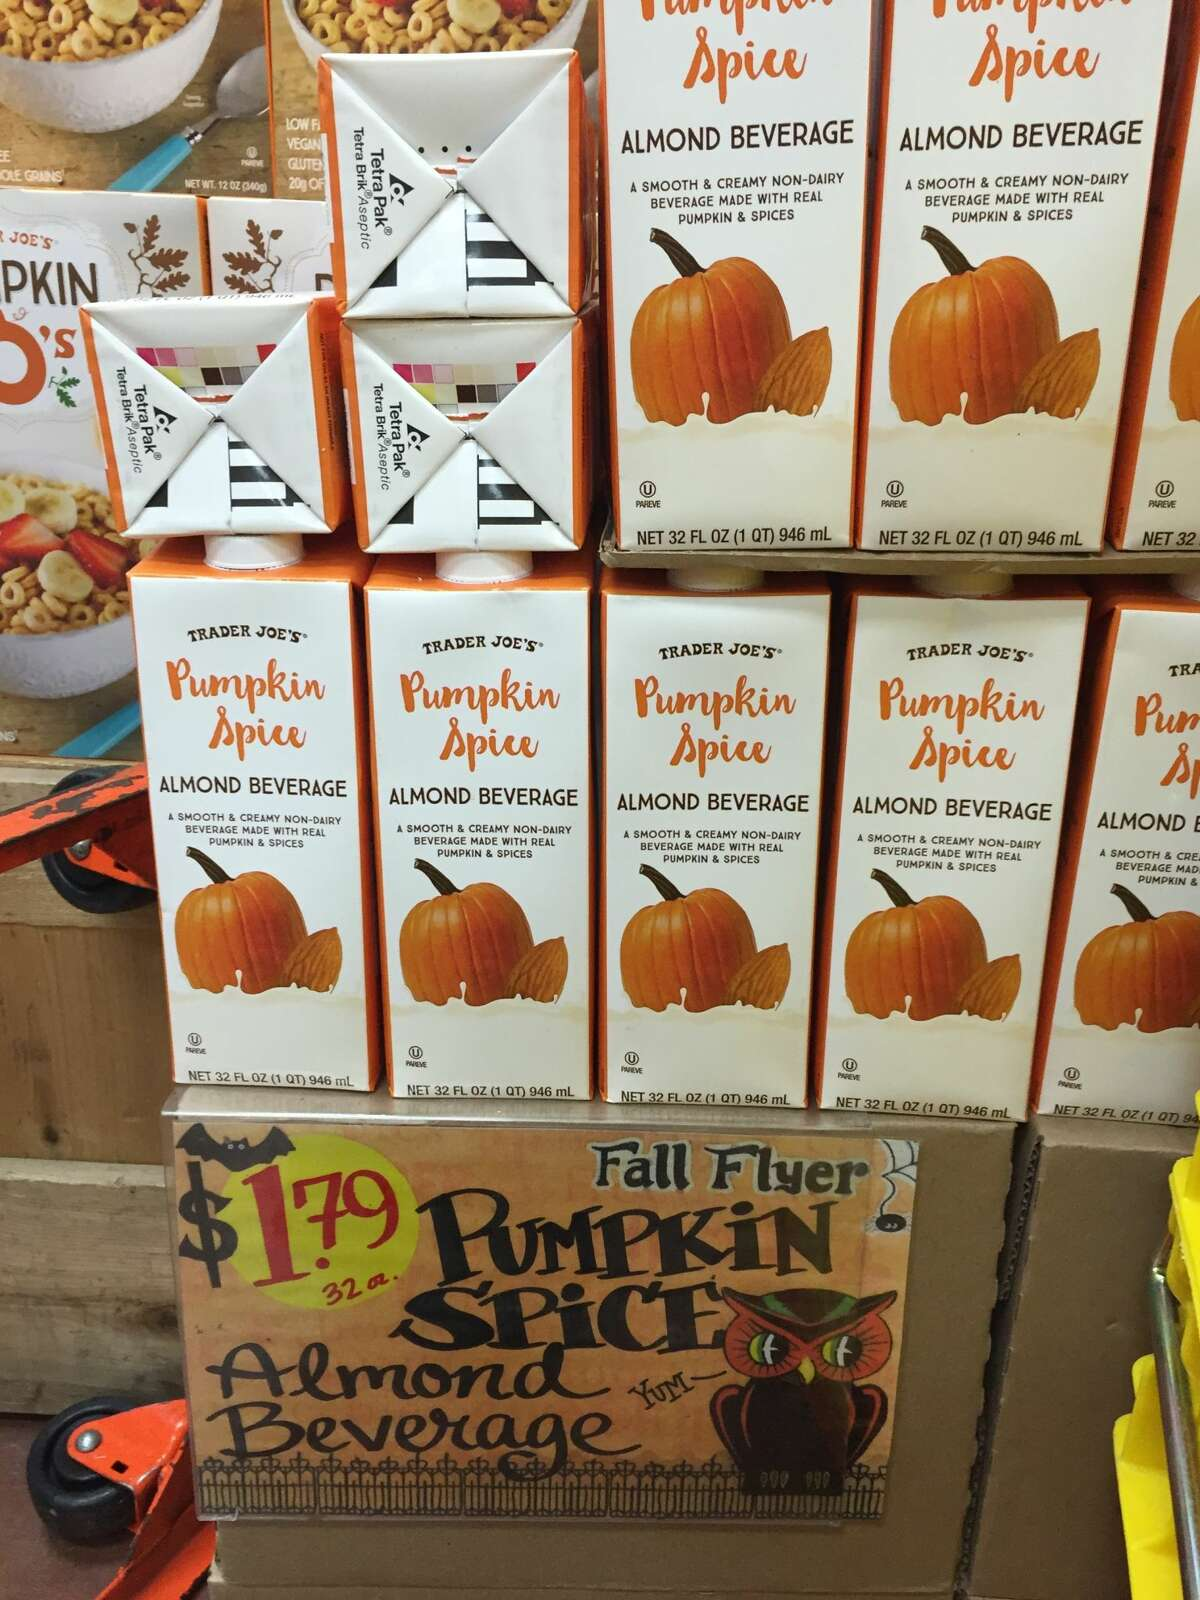 1) Trader Joe's Pumpkin Spice Almond Beverage: This beverage is a bit thicker than most almond milks due to the addition of pumpkin purée.